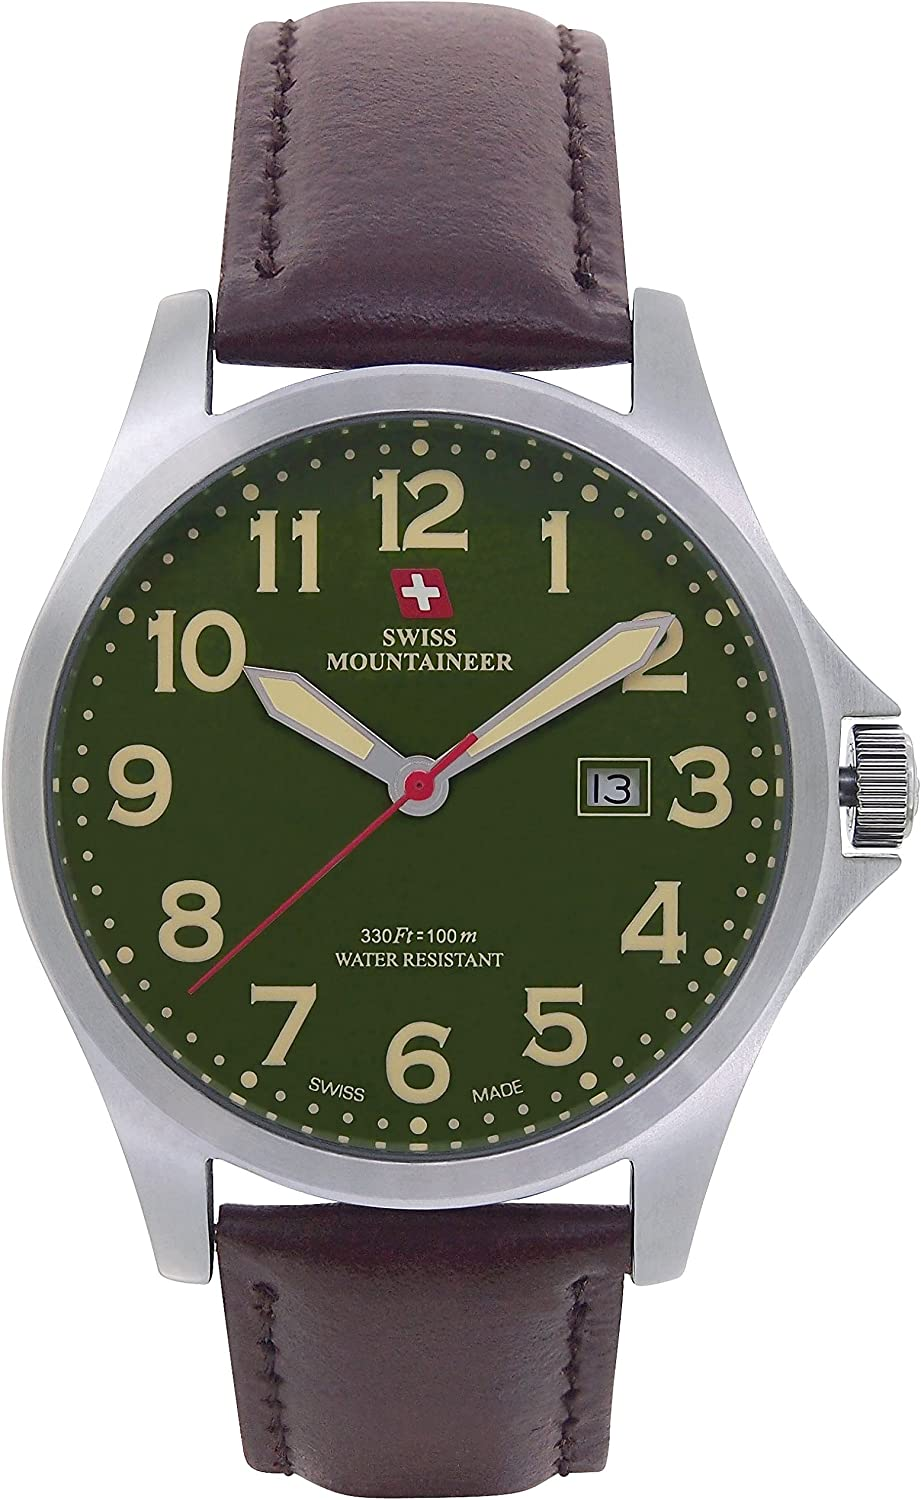 Swiss Mountaineer Mens Swiss Watch Brown Leather Band Large Green Easy Read Dial Date Display SML8032